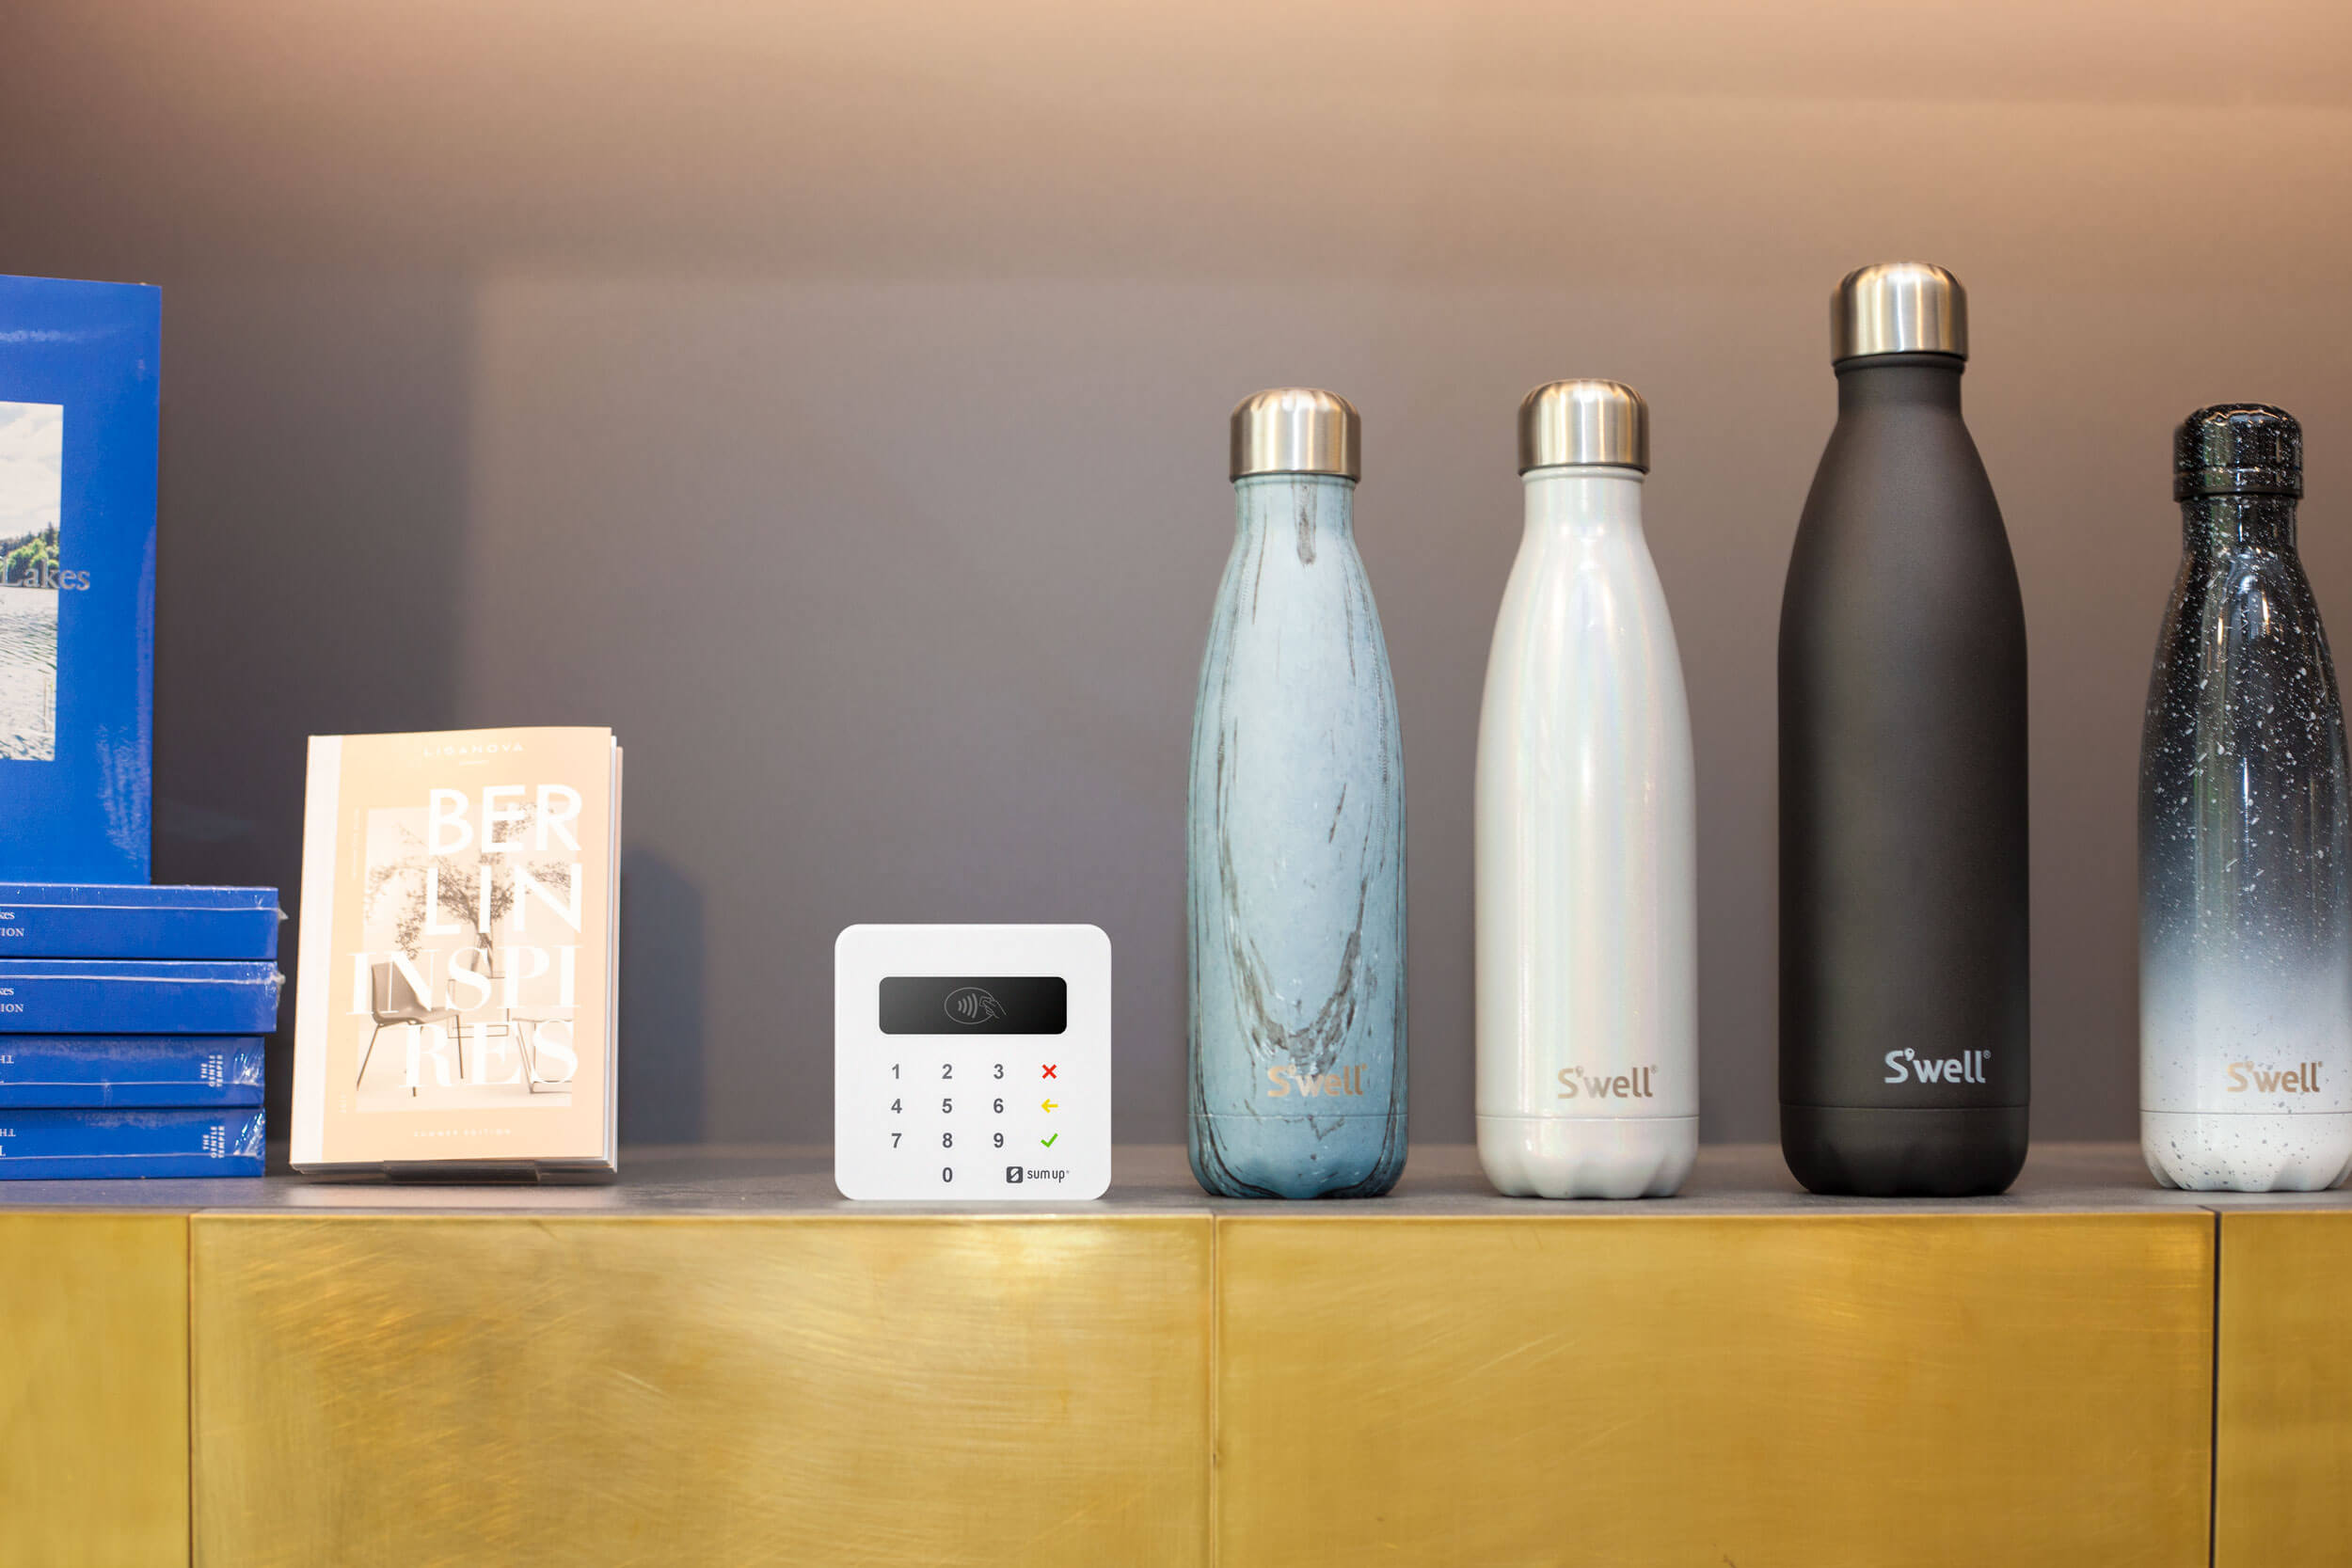 becycle-water-bottles-and-card-reader